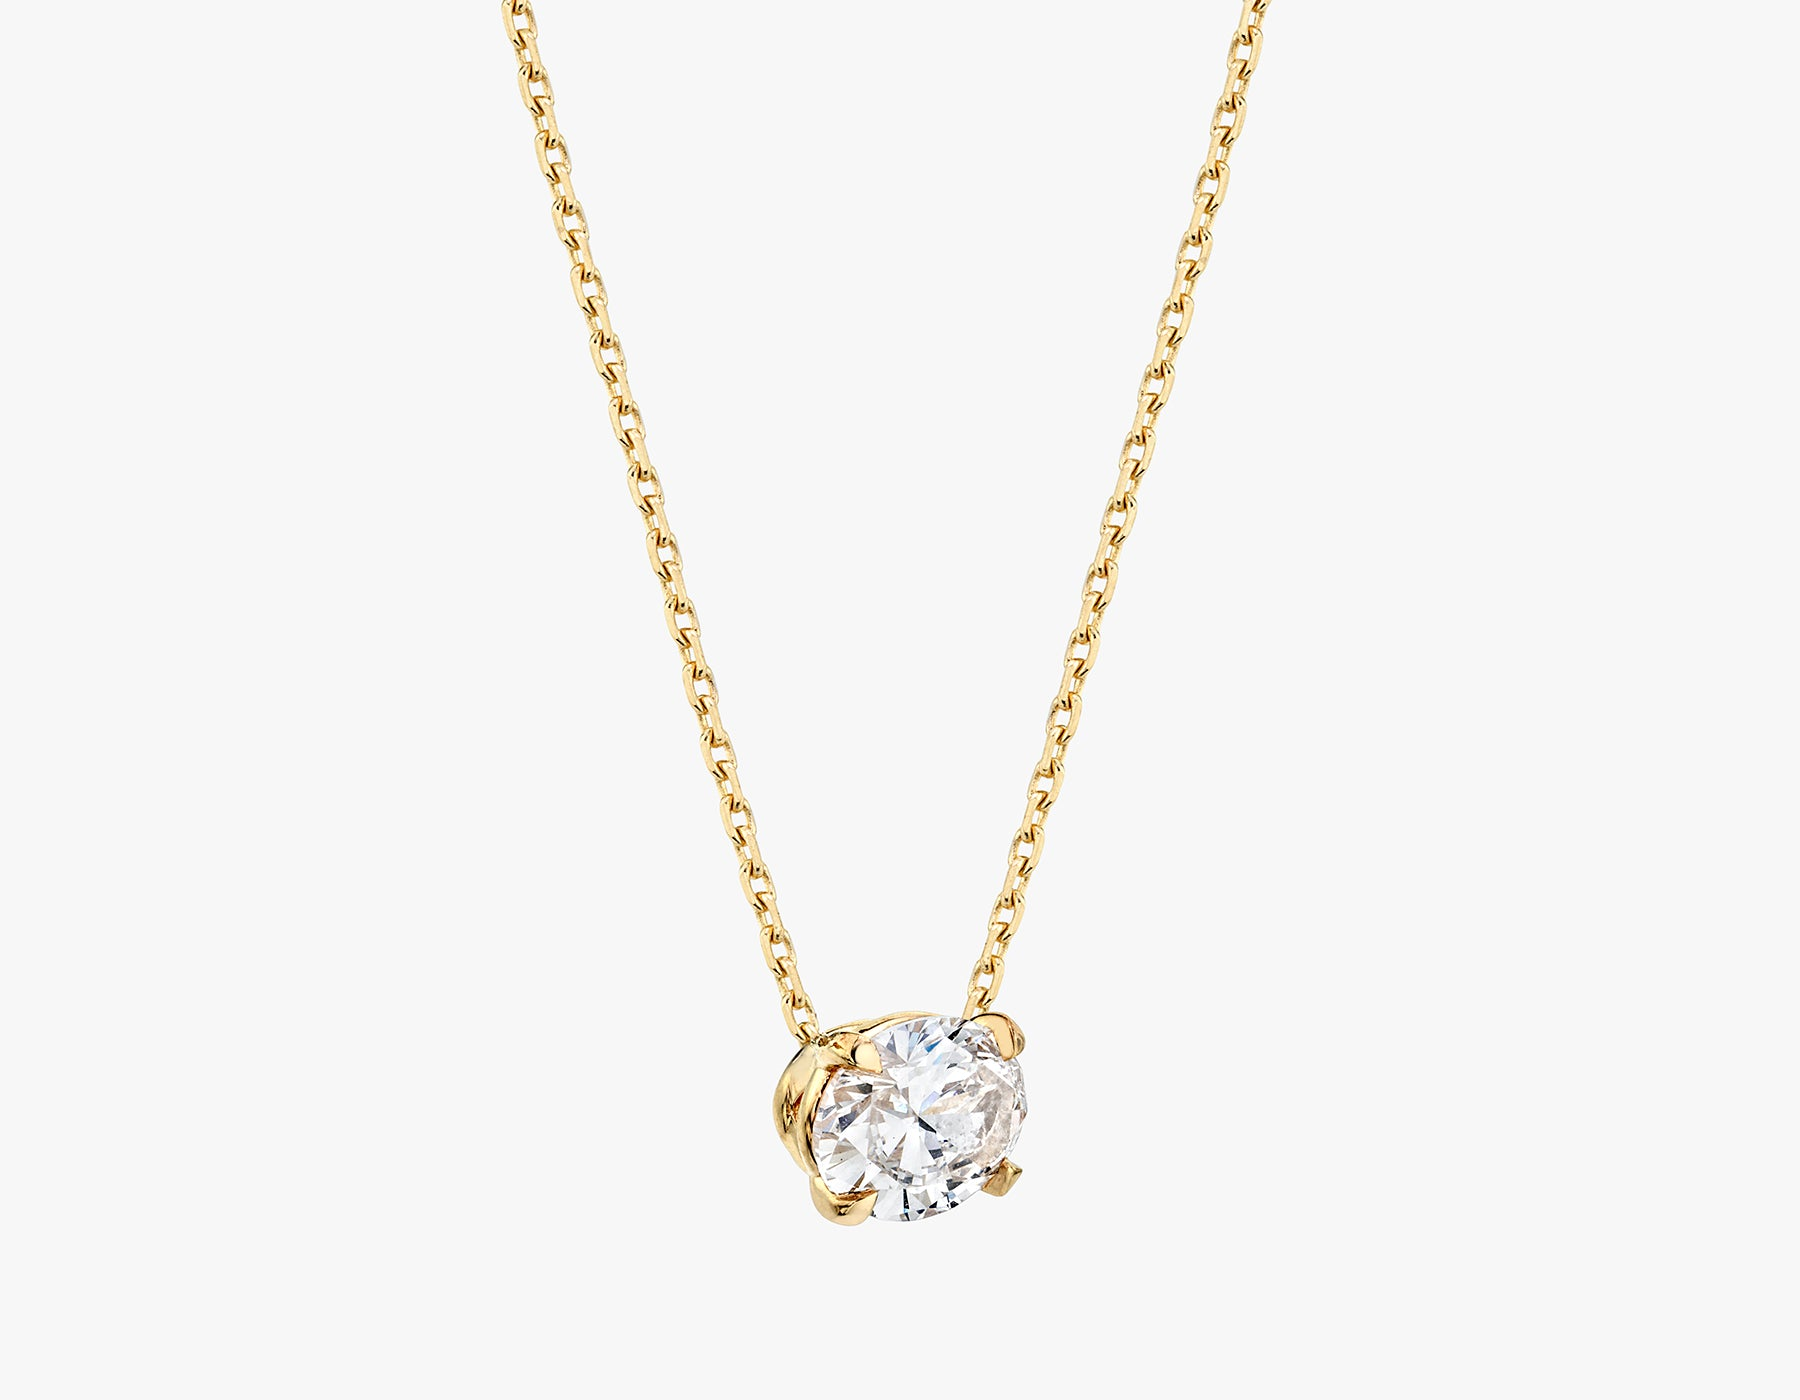 Vrai 1ct Solitaire Oval Created Diamond Necklace side view, 14K Yellow Gold